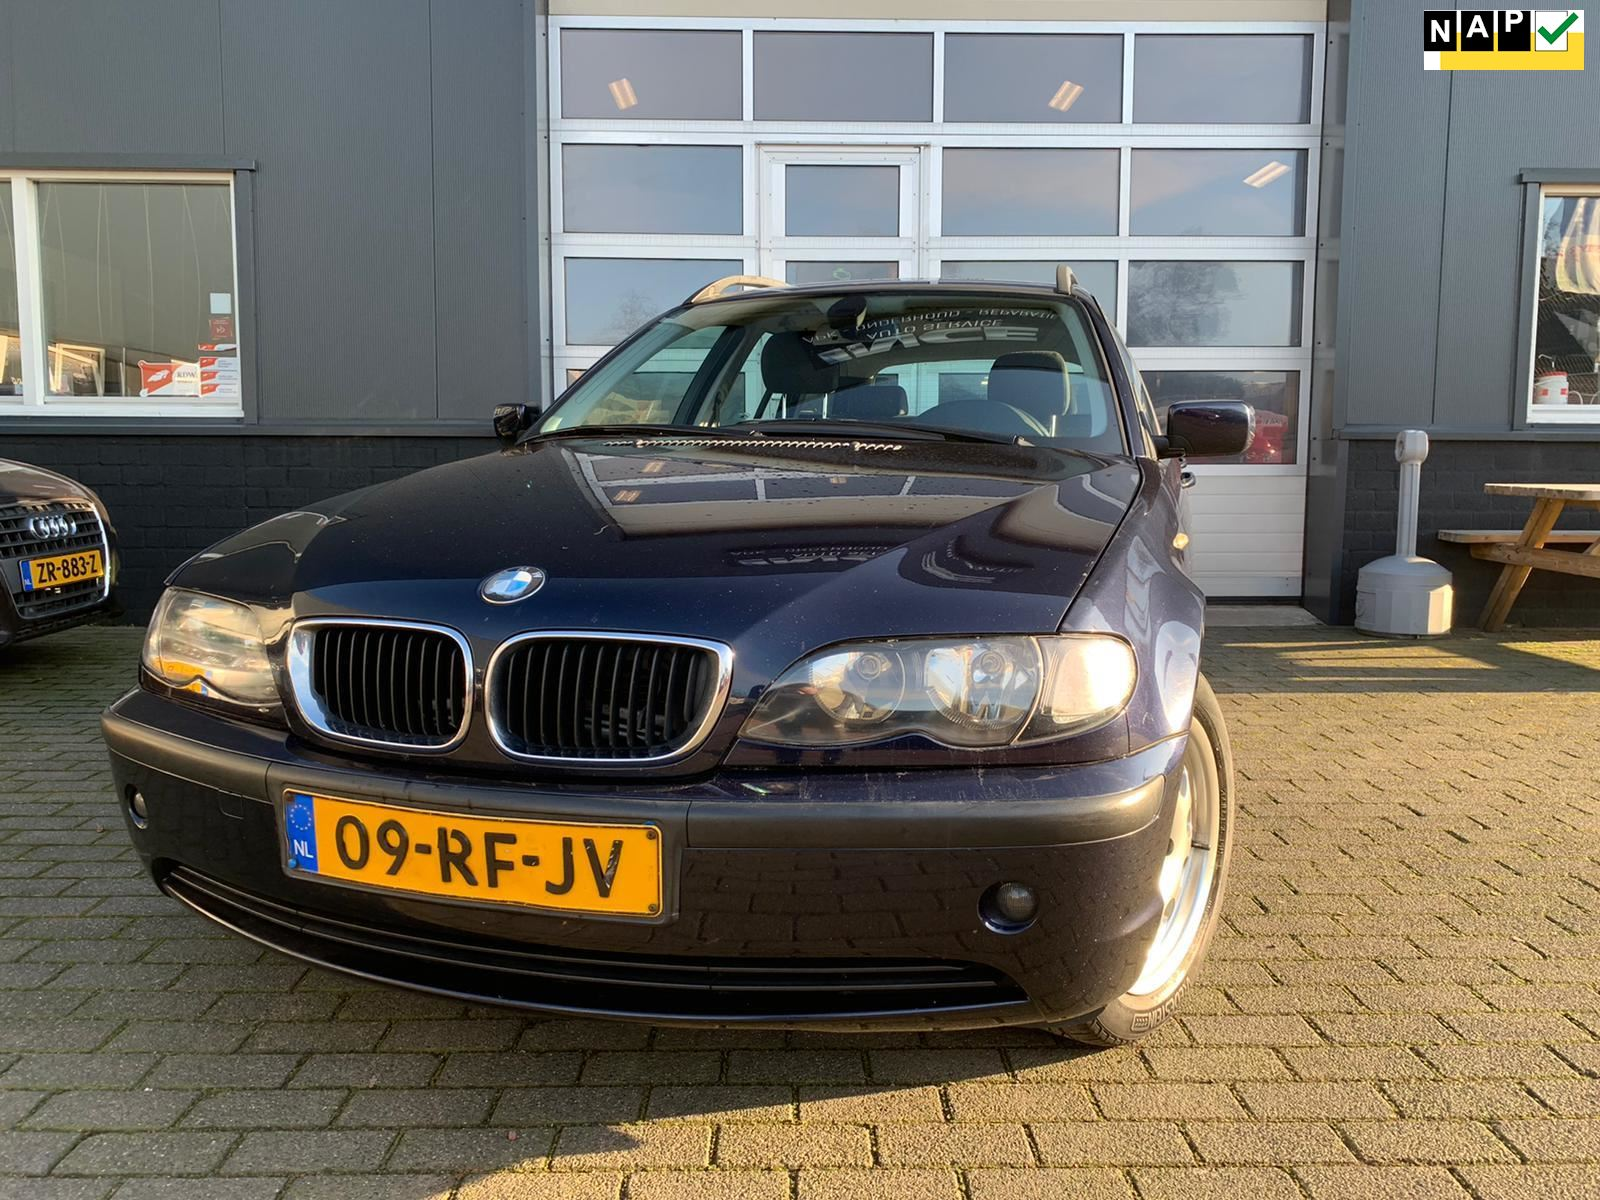 BMW 3-serie Touring occasion - Ince Autoservice